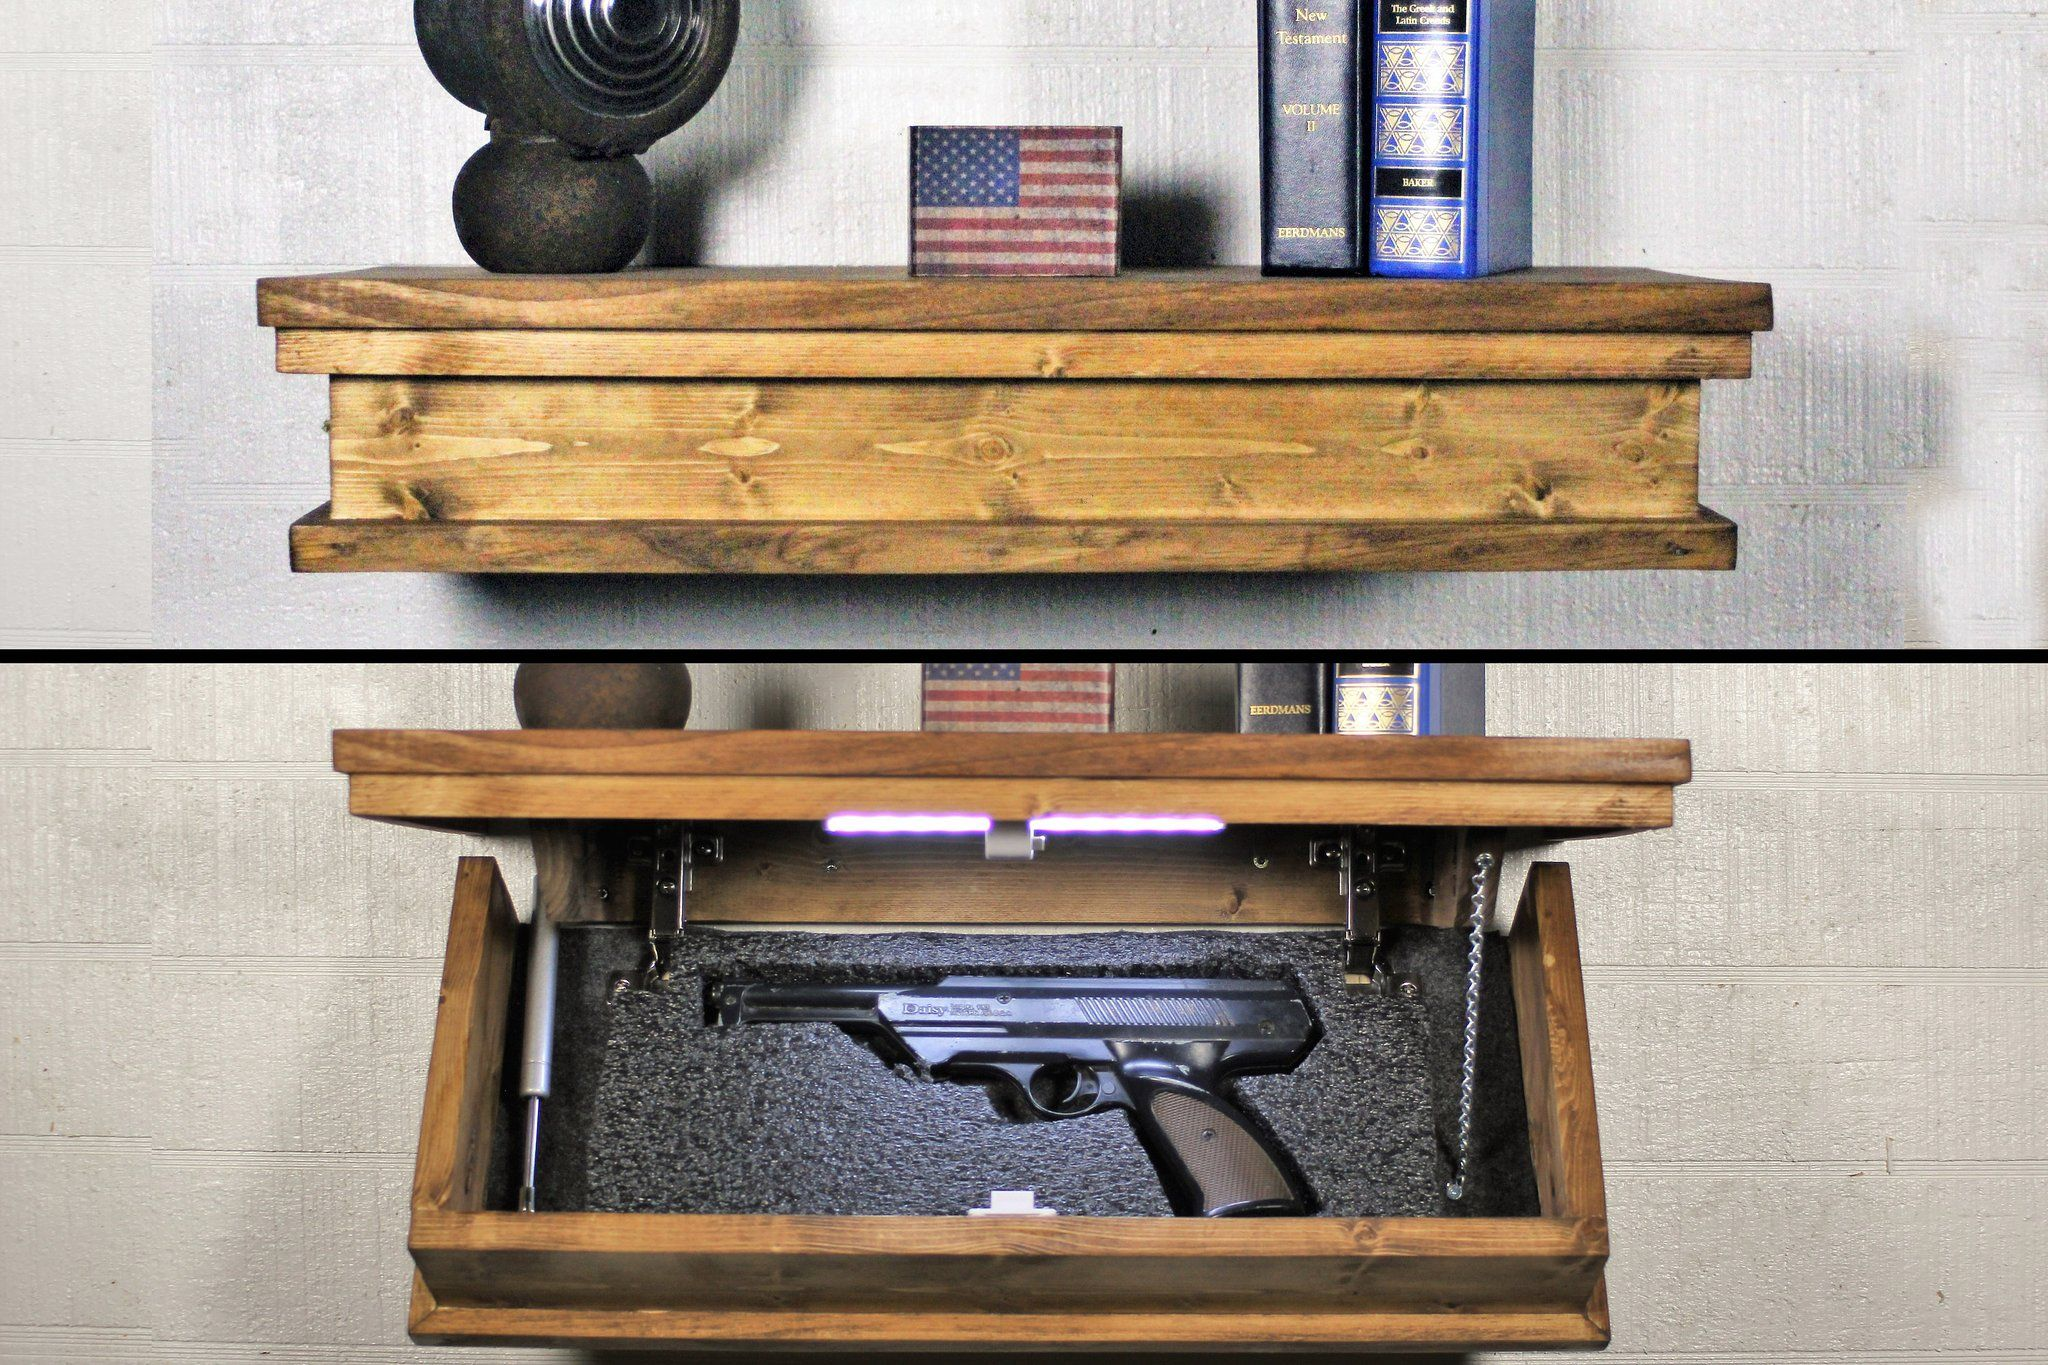 Pin on concealment furniture